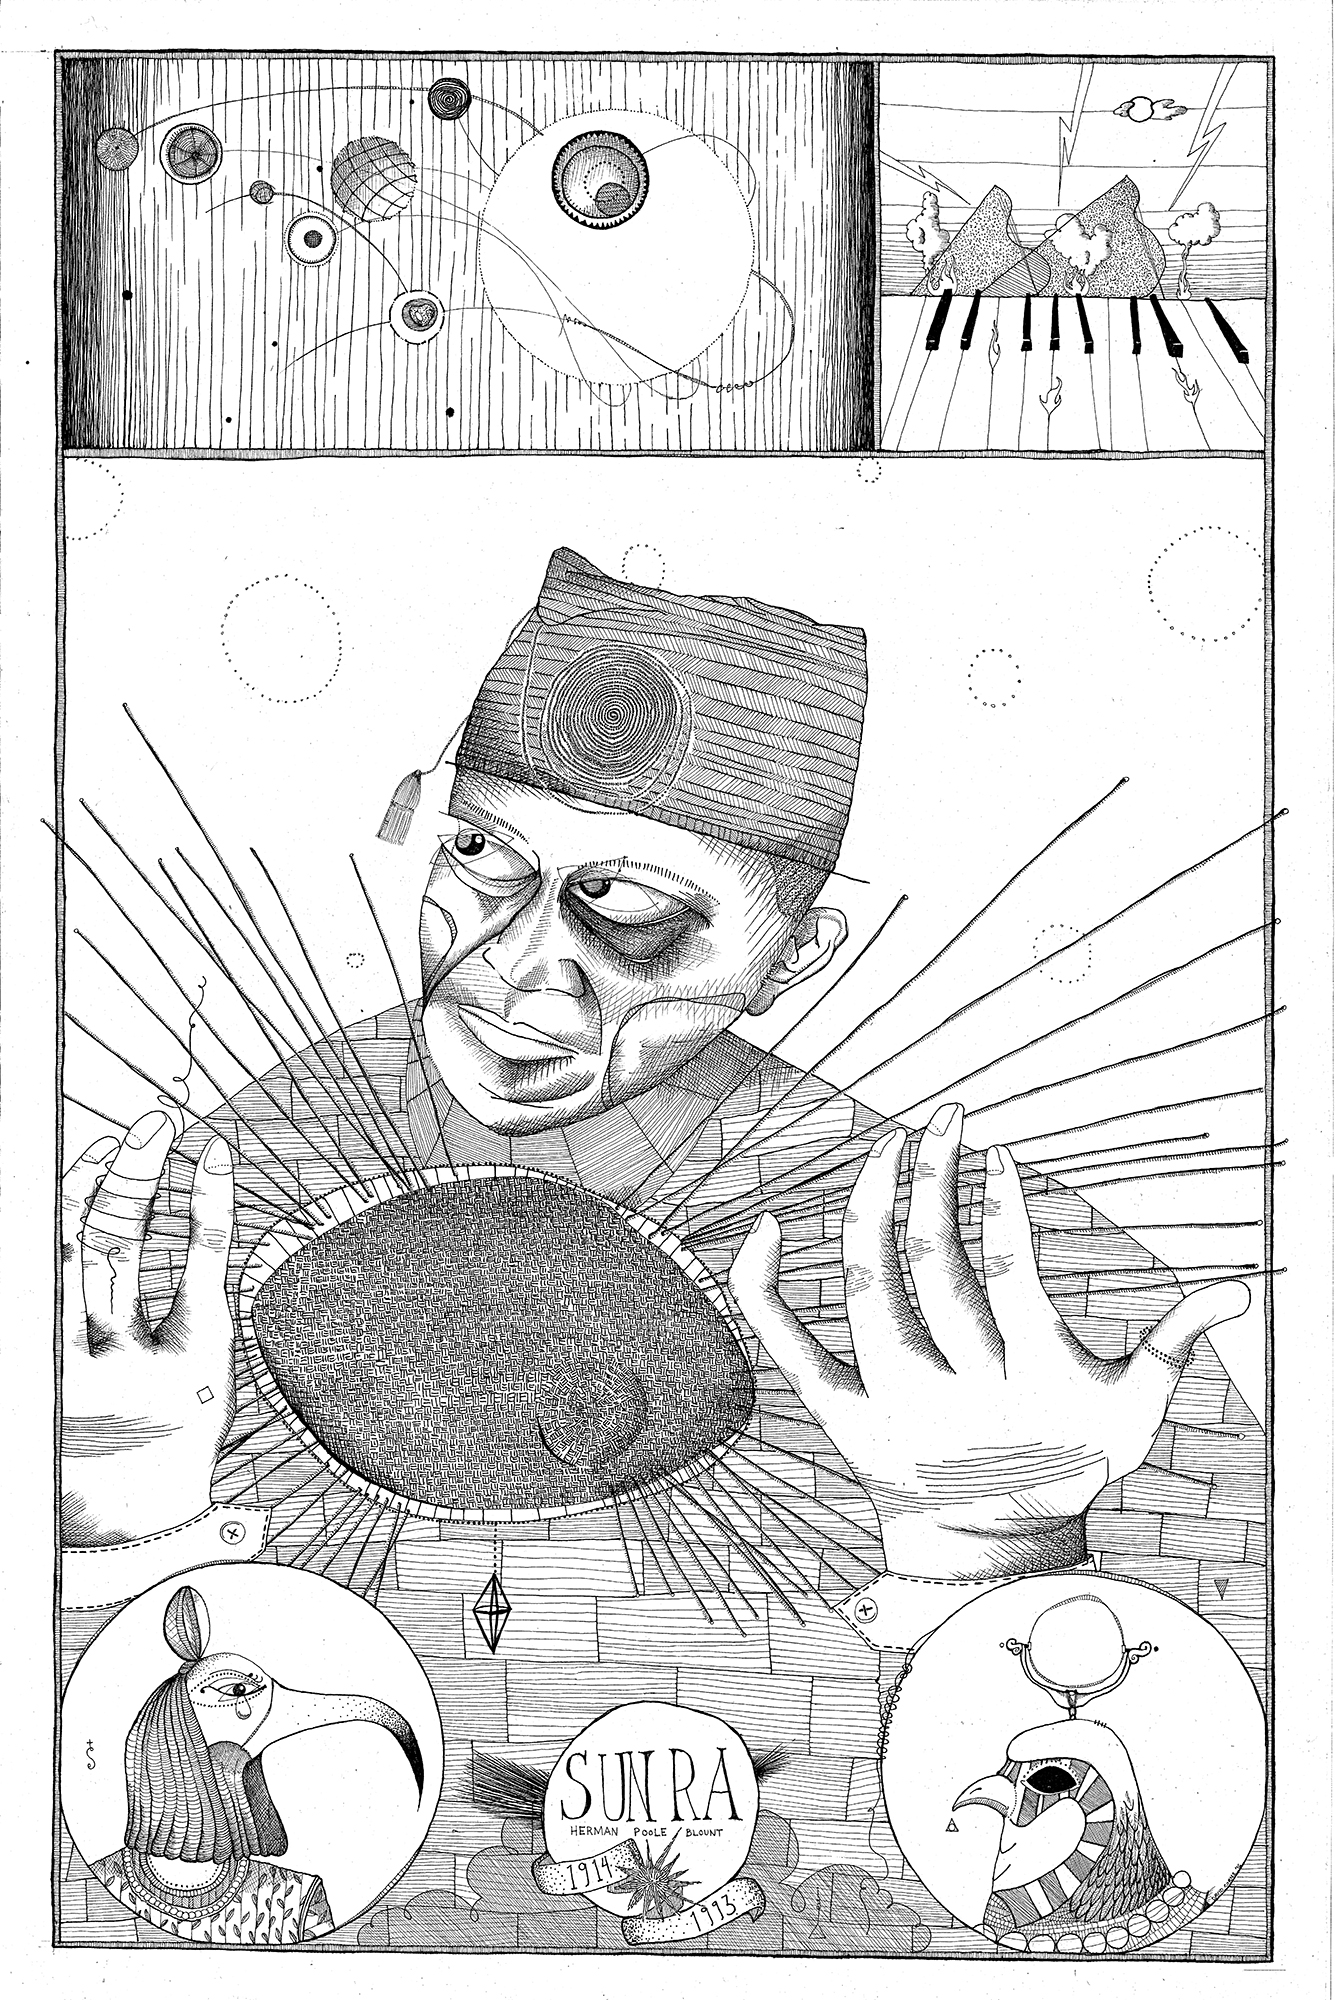 Portrait of Sun Ra